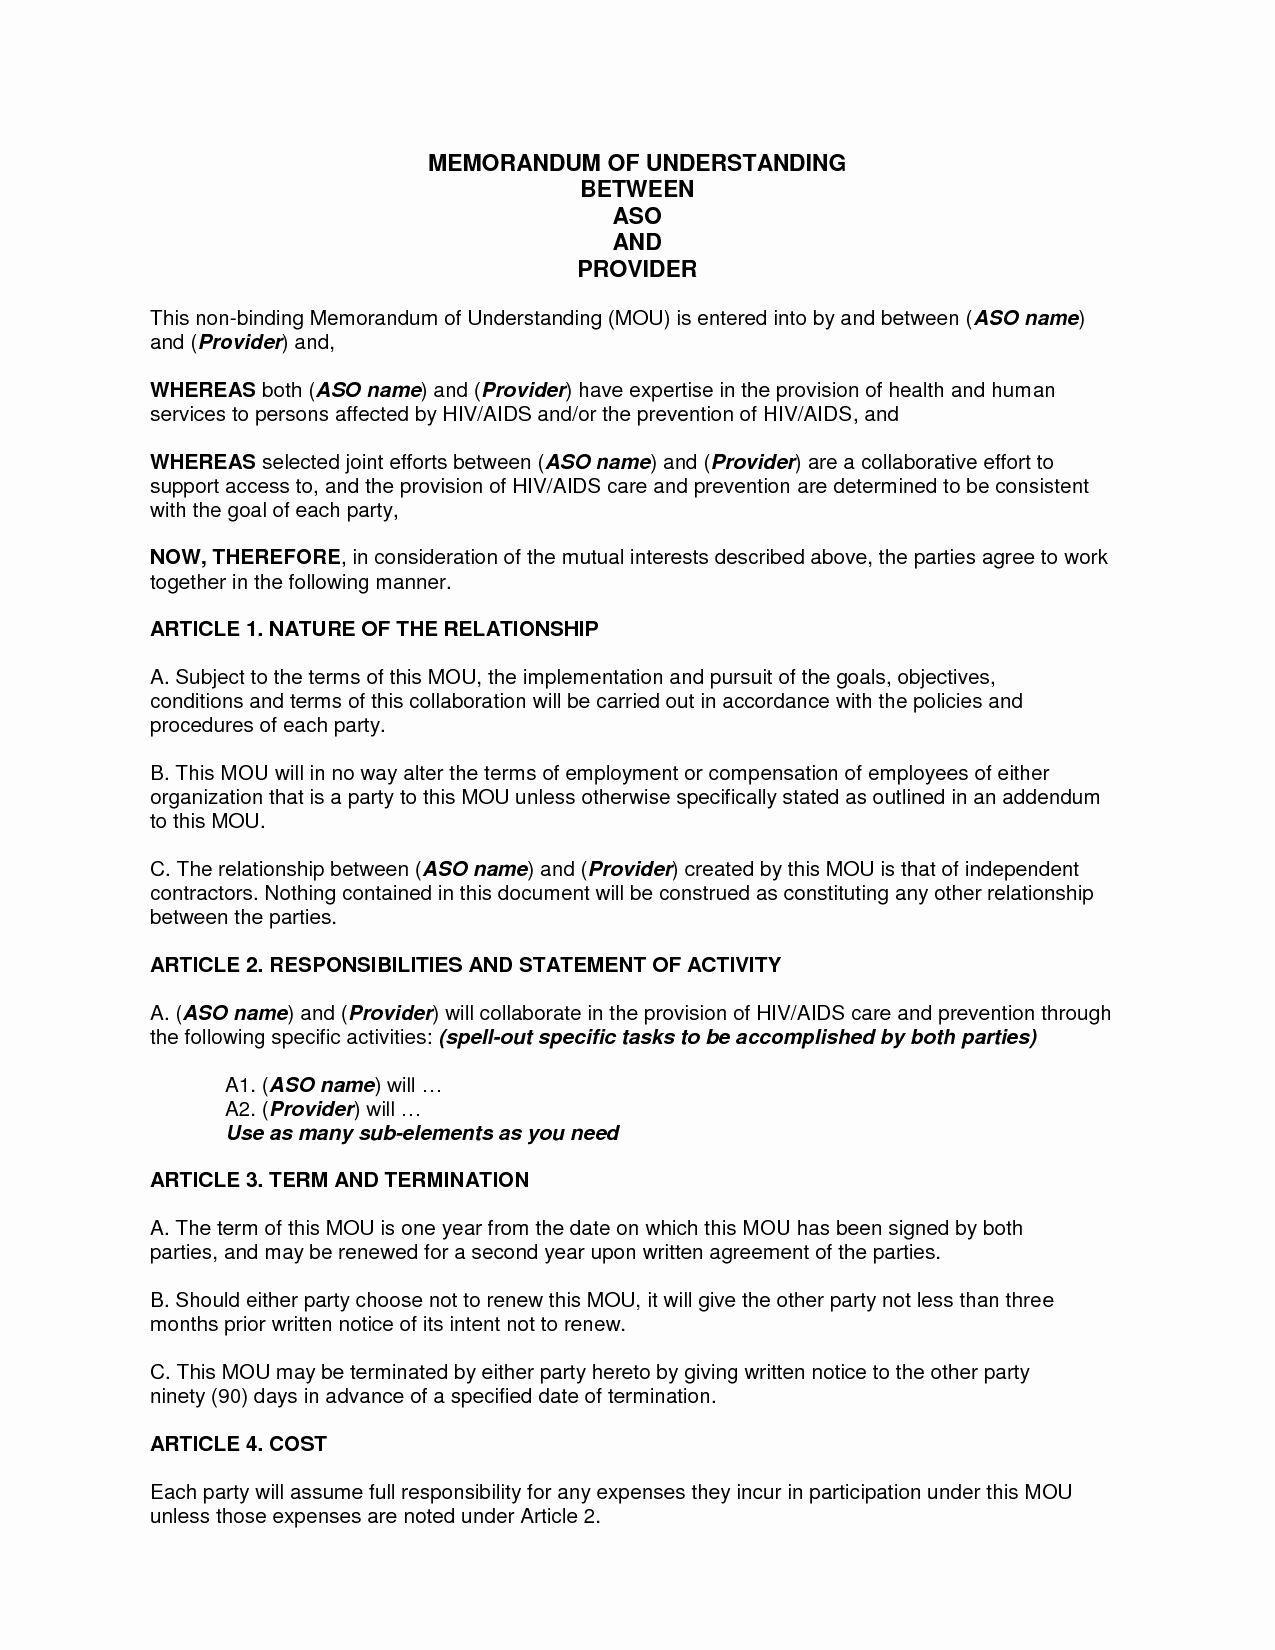 Memorandum Of Agreement Template Beautiful Sample Memorandum Of Understanding Business Partnership